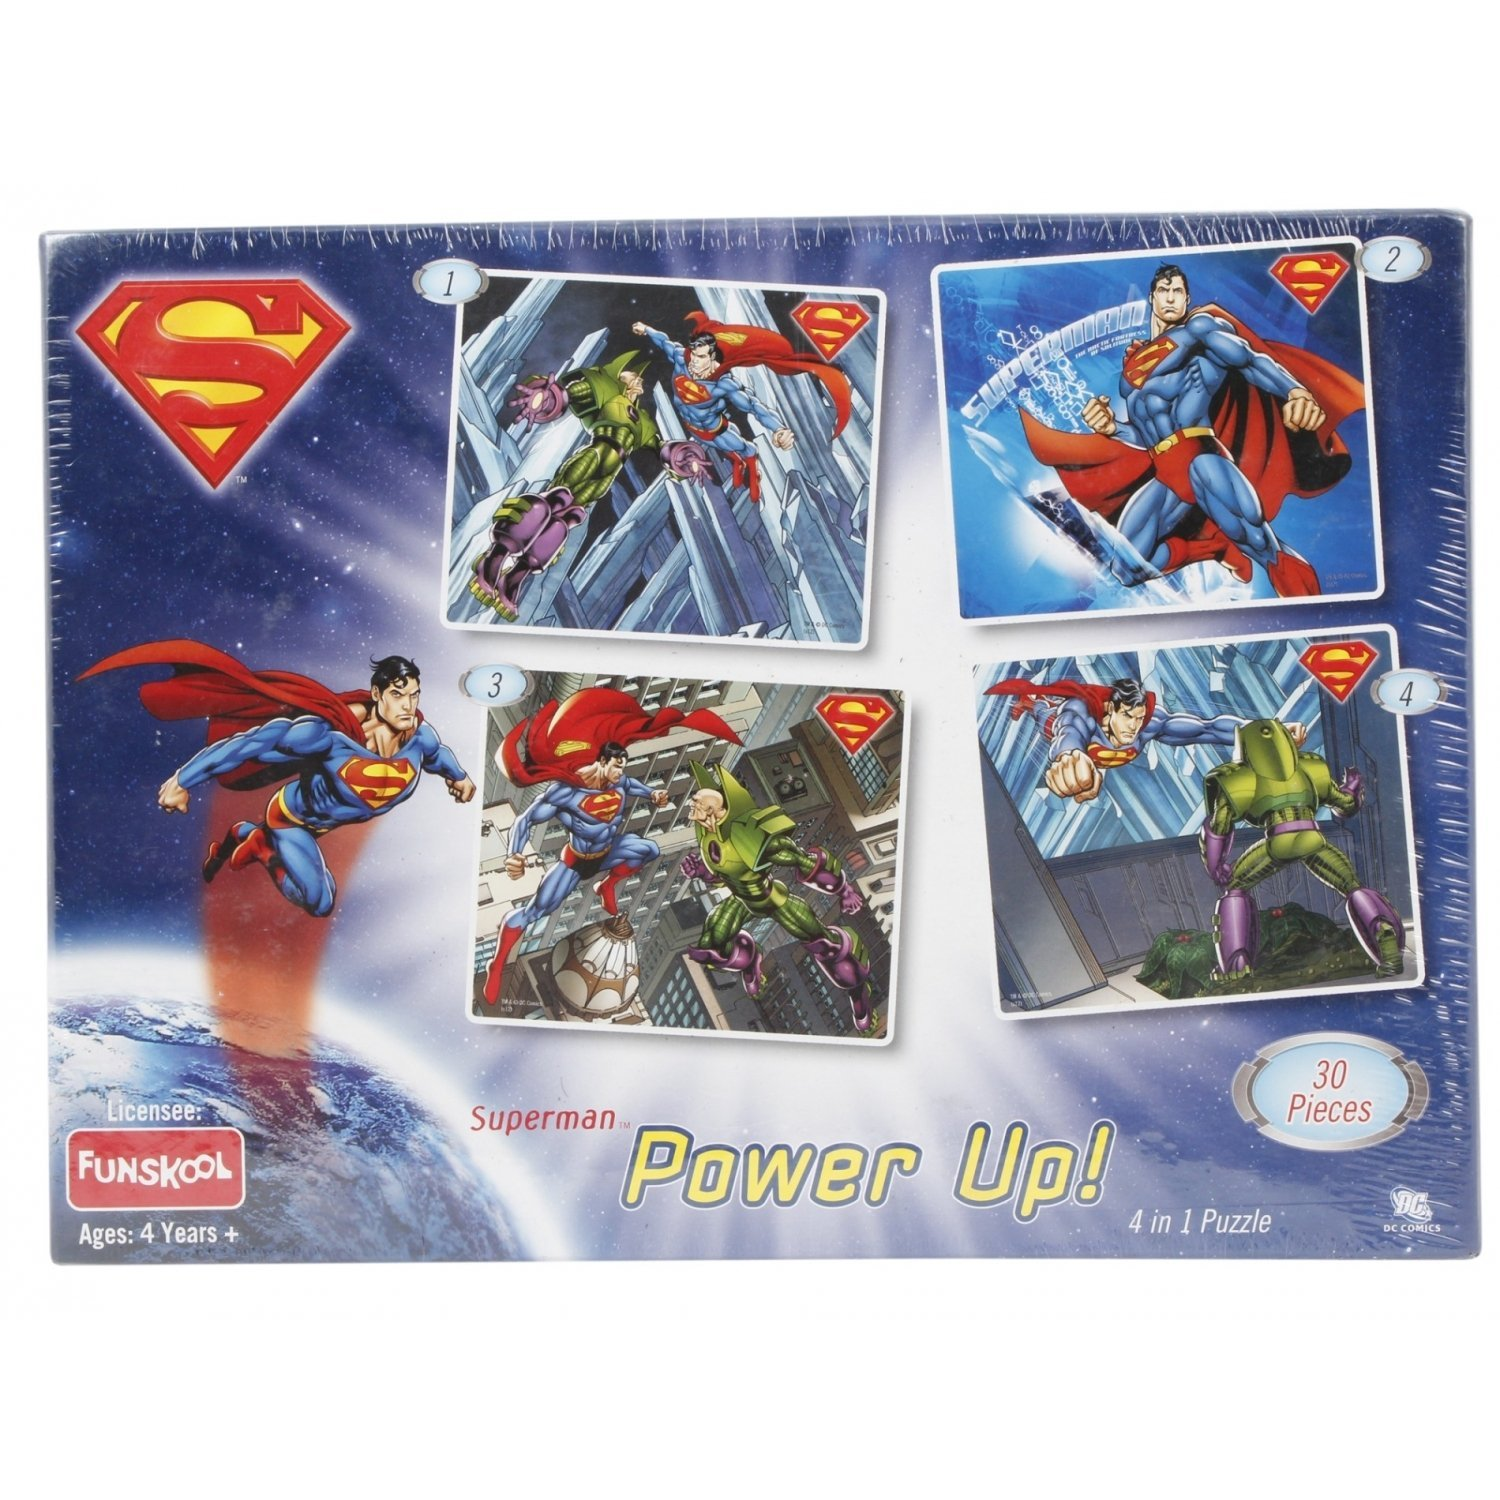 Superman Power Up 4 in 1 Puzzle (30 Pcs)